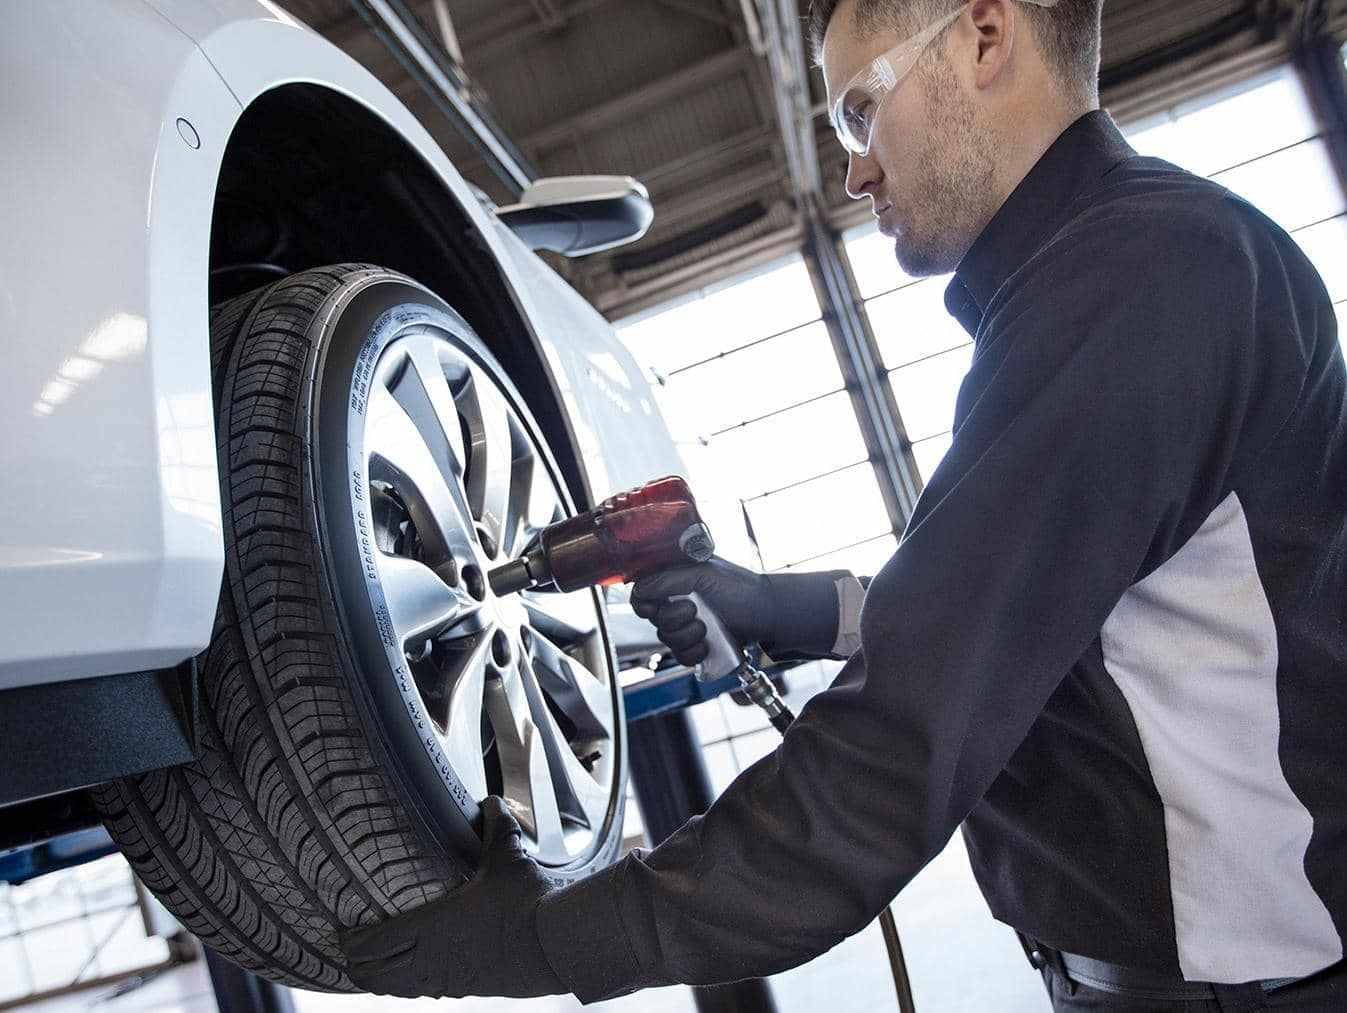 Chevrolet Service Technician putting new tire on car